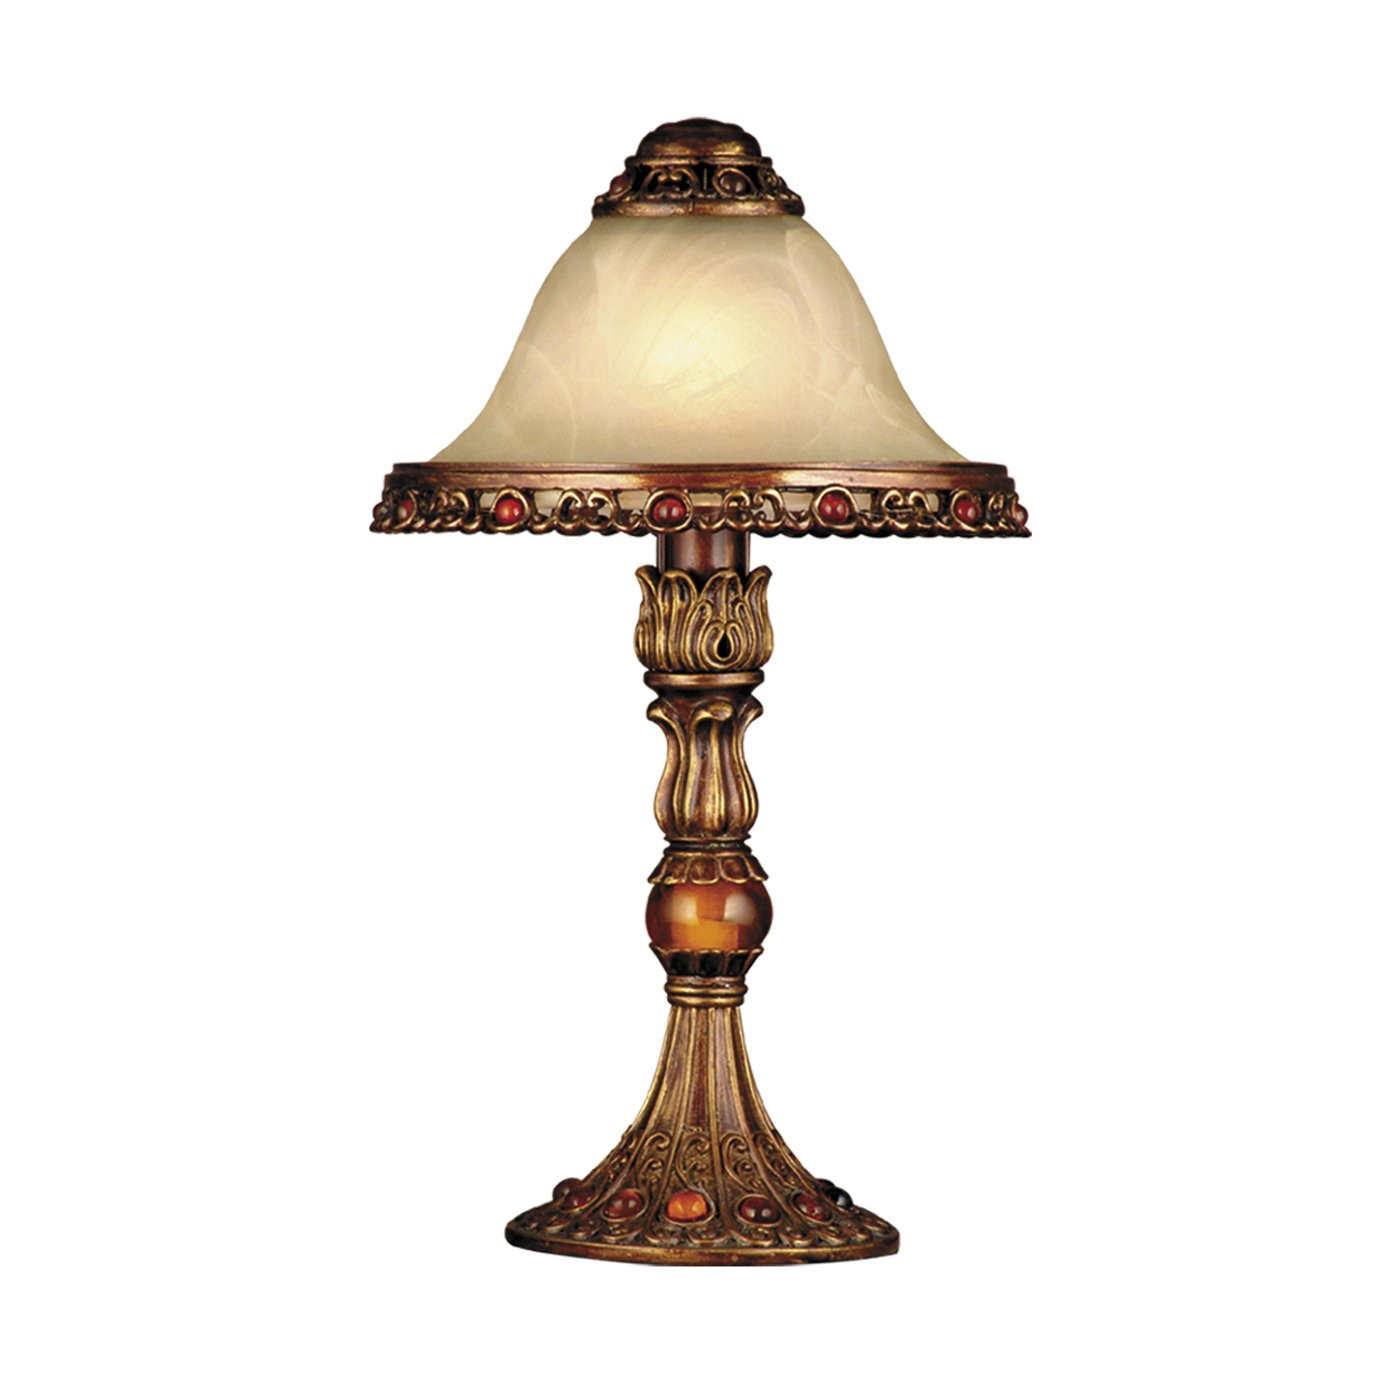 Antique Tiffany Lamps Lovely Home Ficedecoration Of Amazing 47 Photos Antique Tiffany Lamps